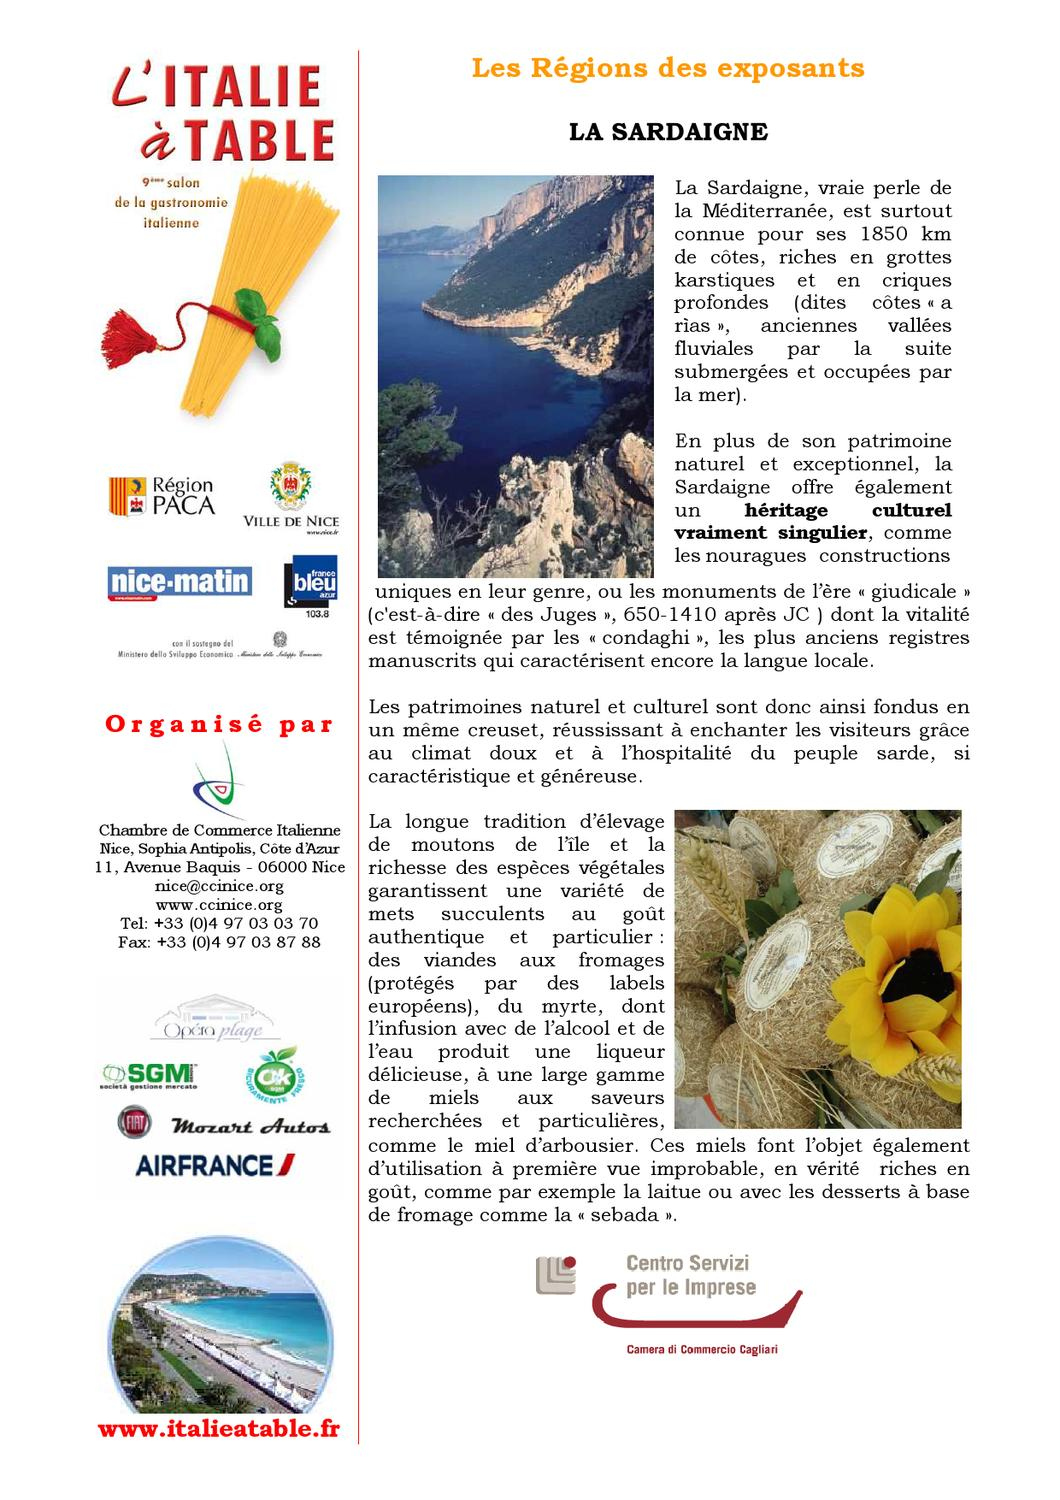 dossier de presse l 39 italie table 2013 by chambre de